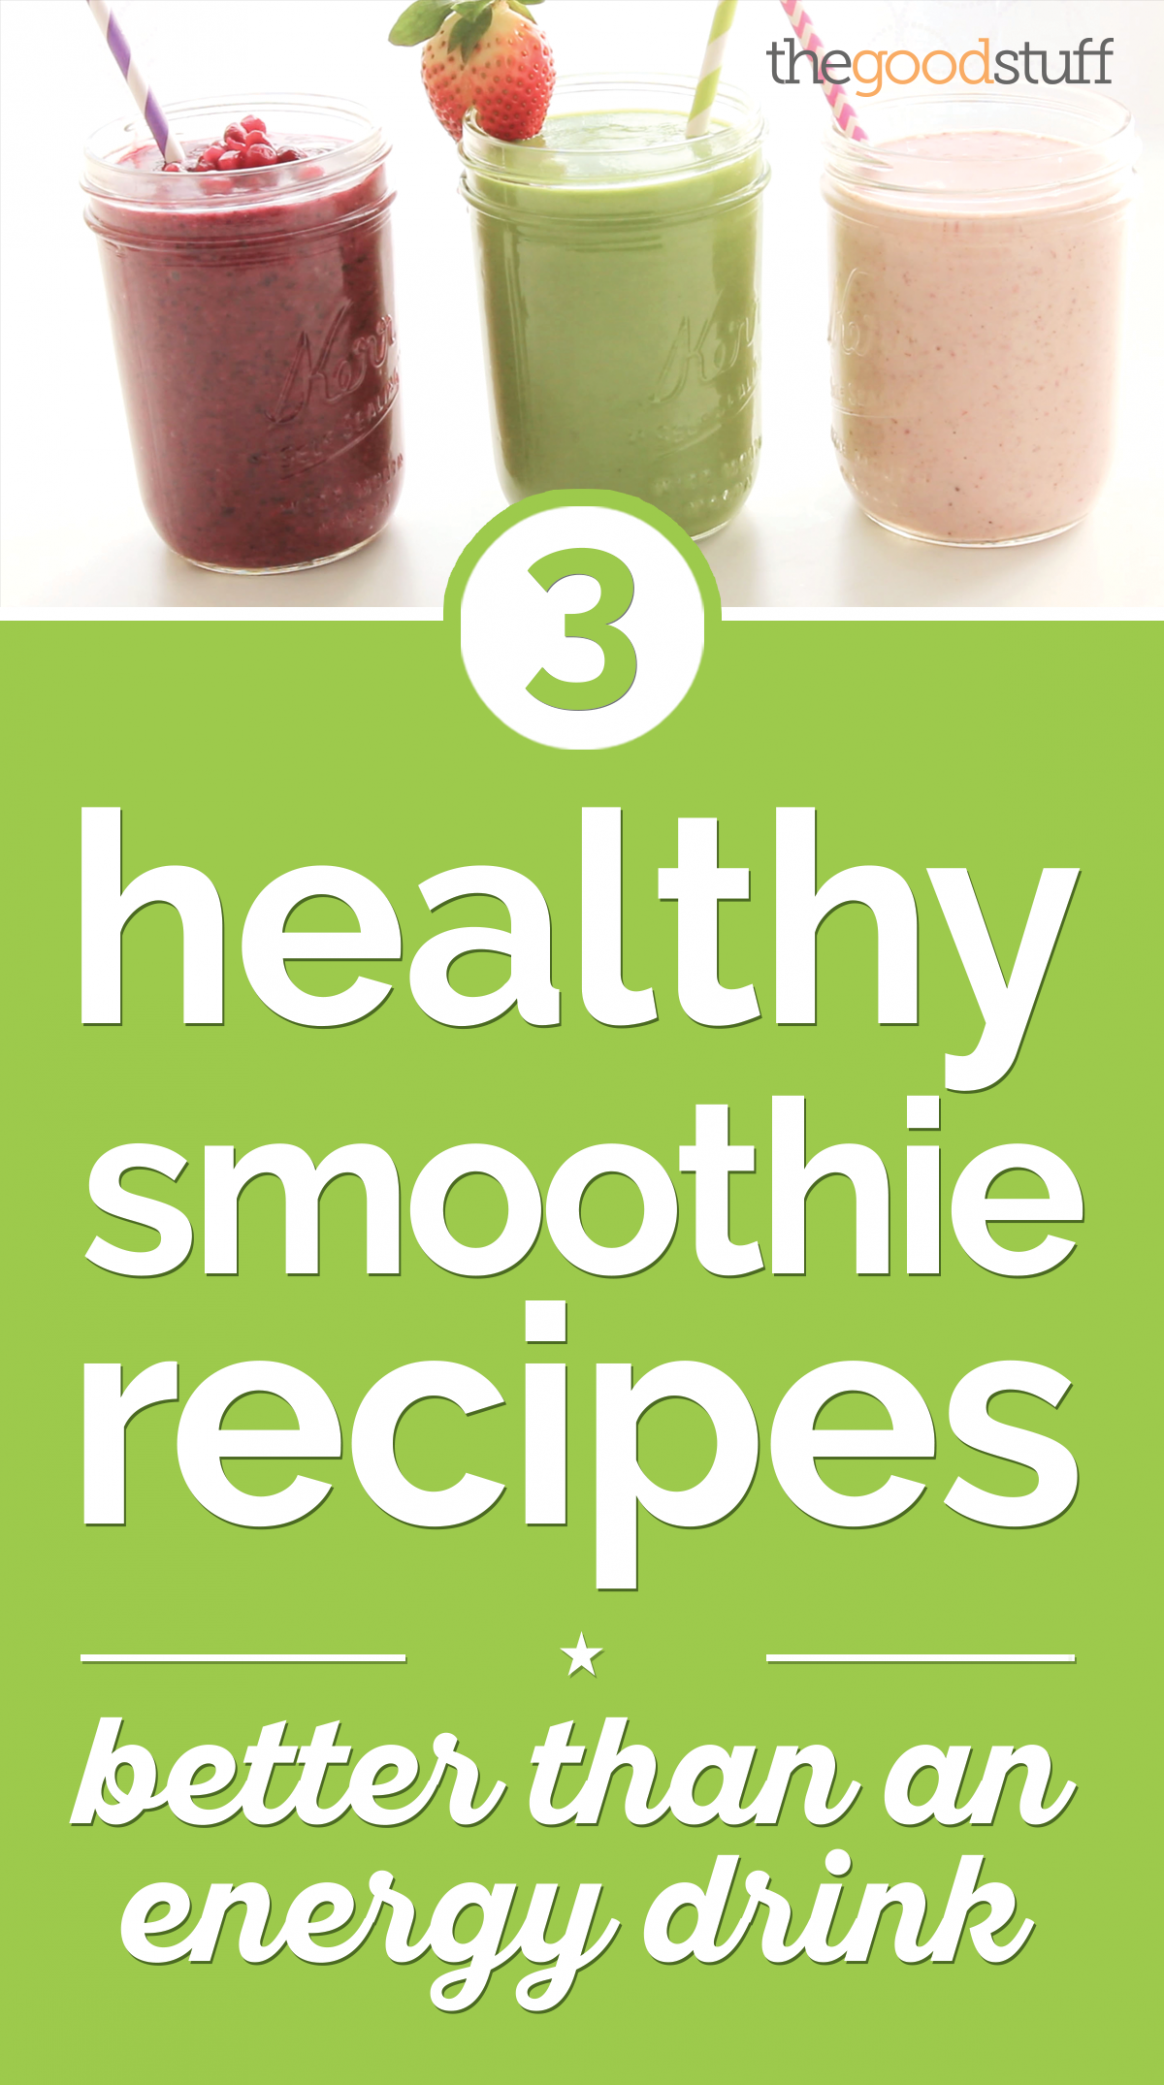 15 Healthy Smoothie Recipes Better Than An Energy Drink ..